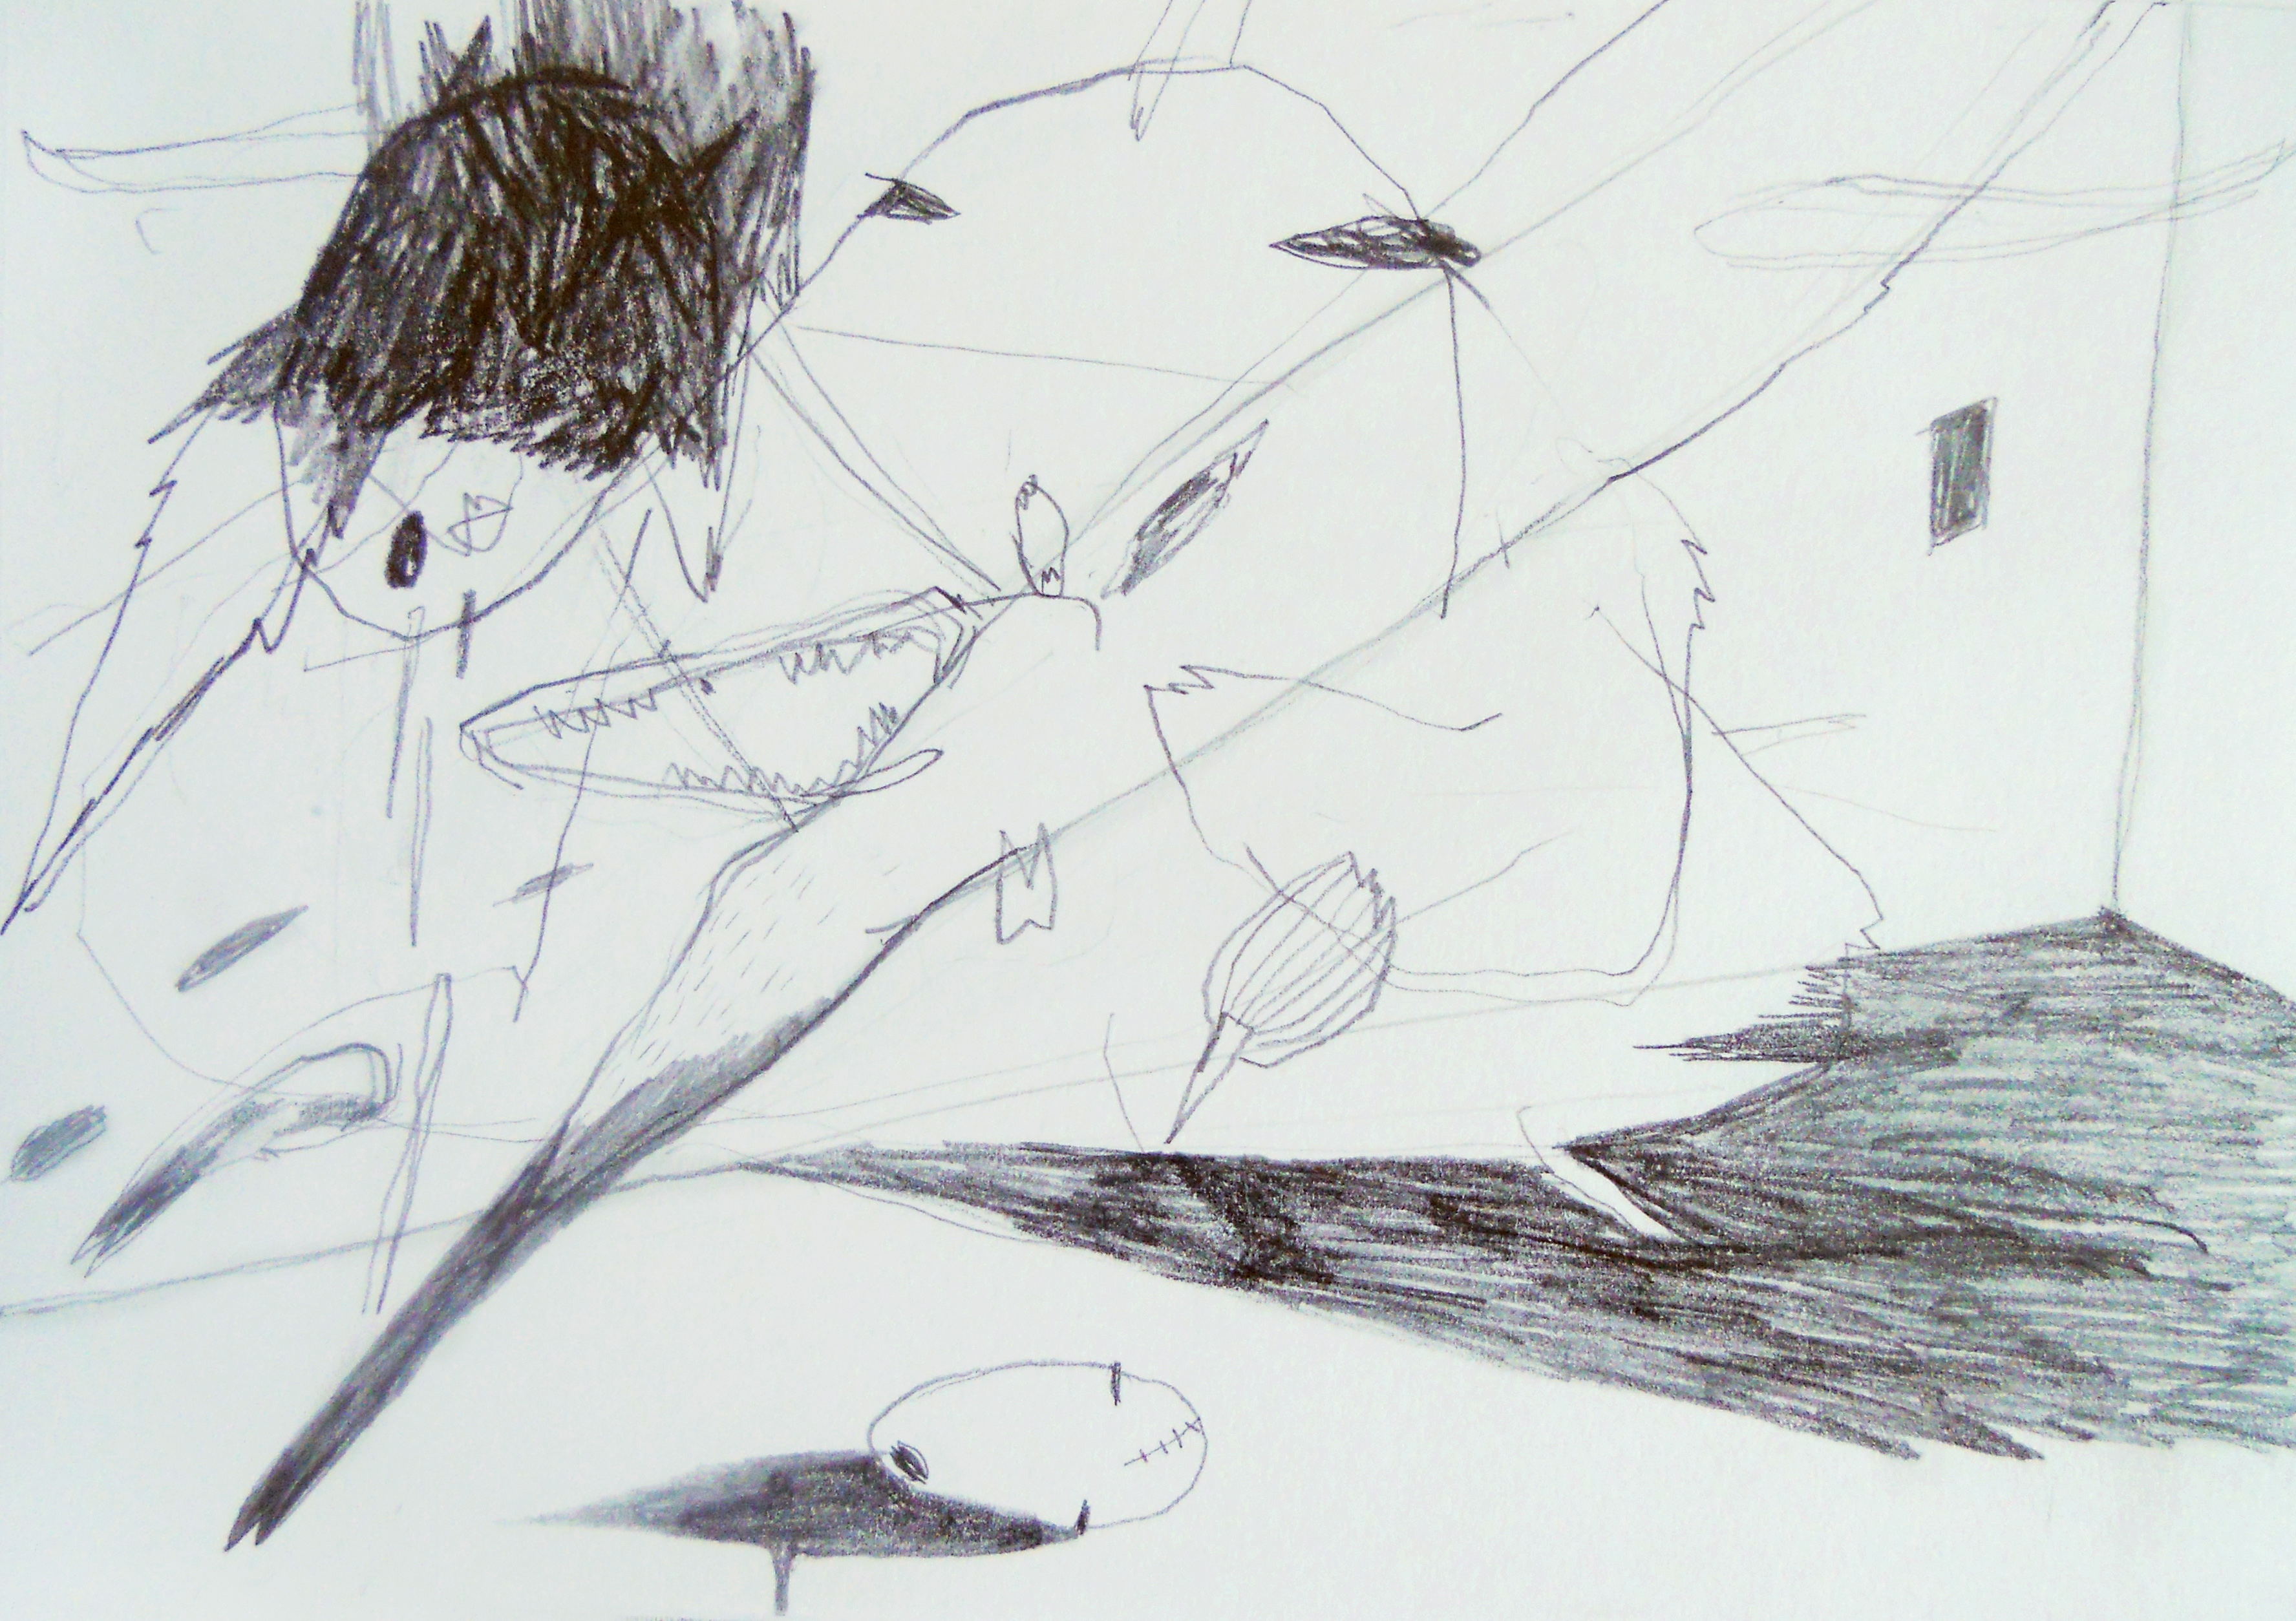 Drawings from a diary